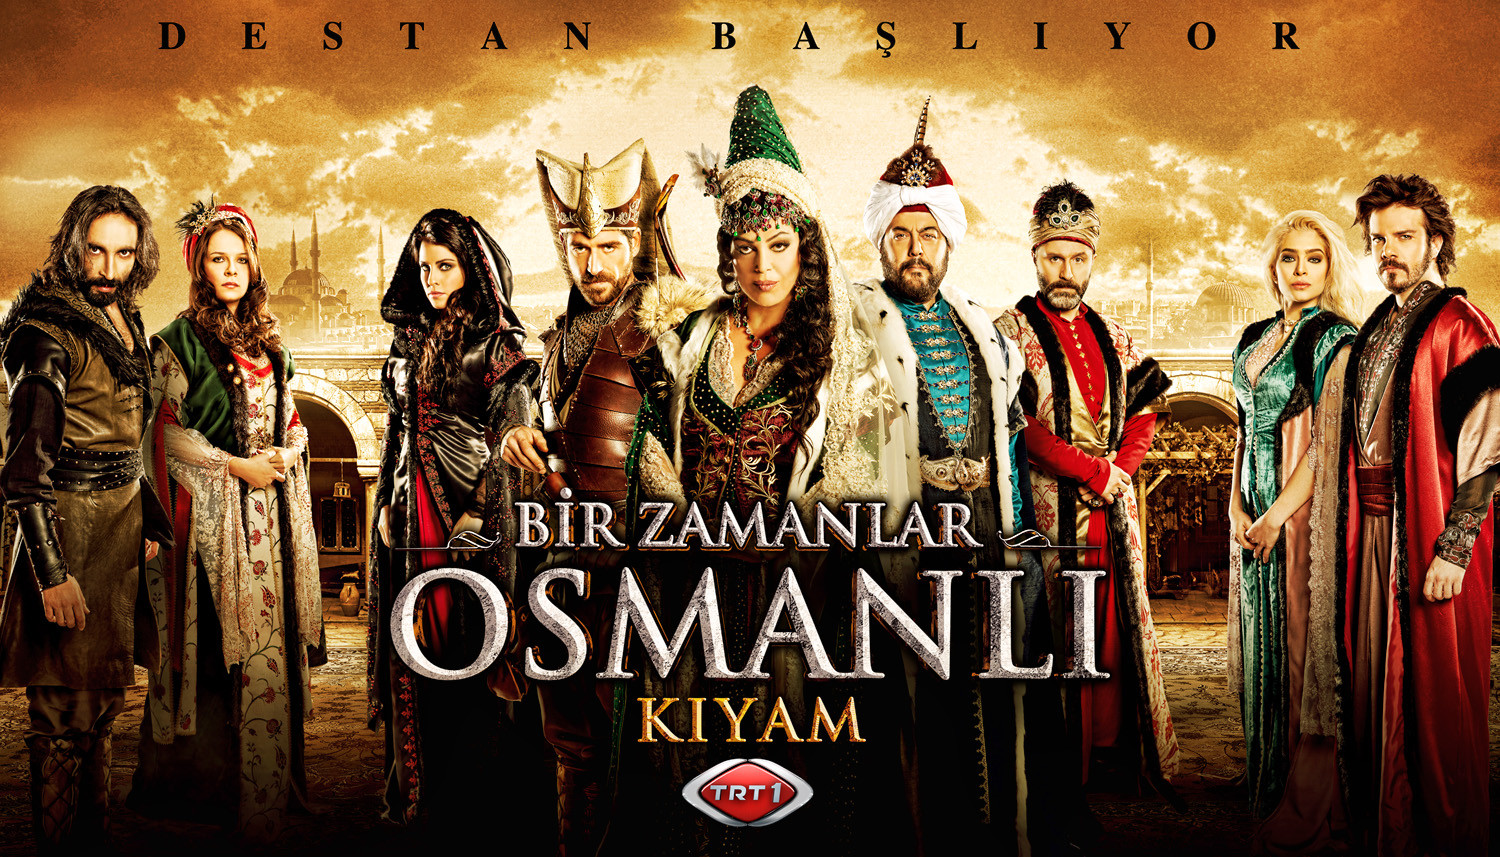 Bir zamanlar osmanli kiyam - ottomon empire rebellion tv series